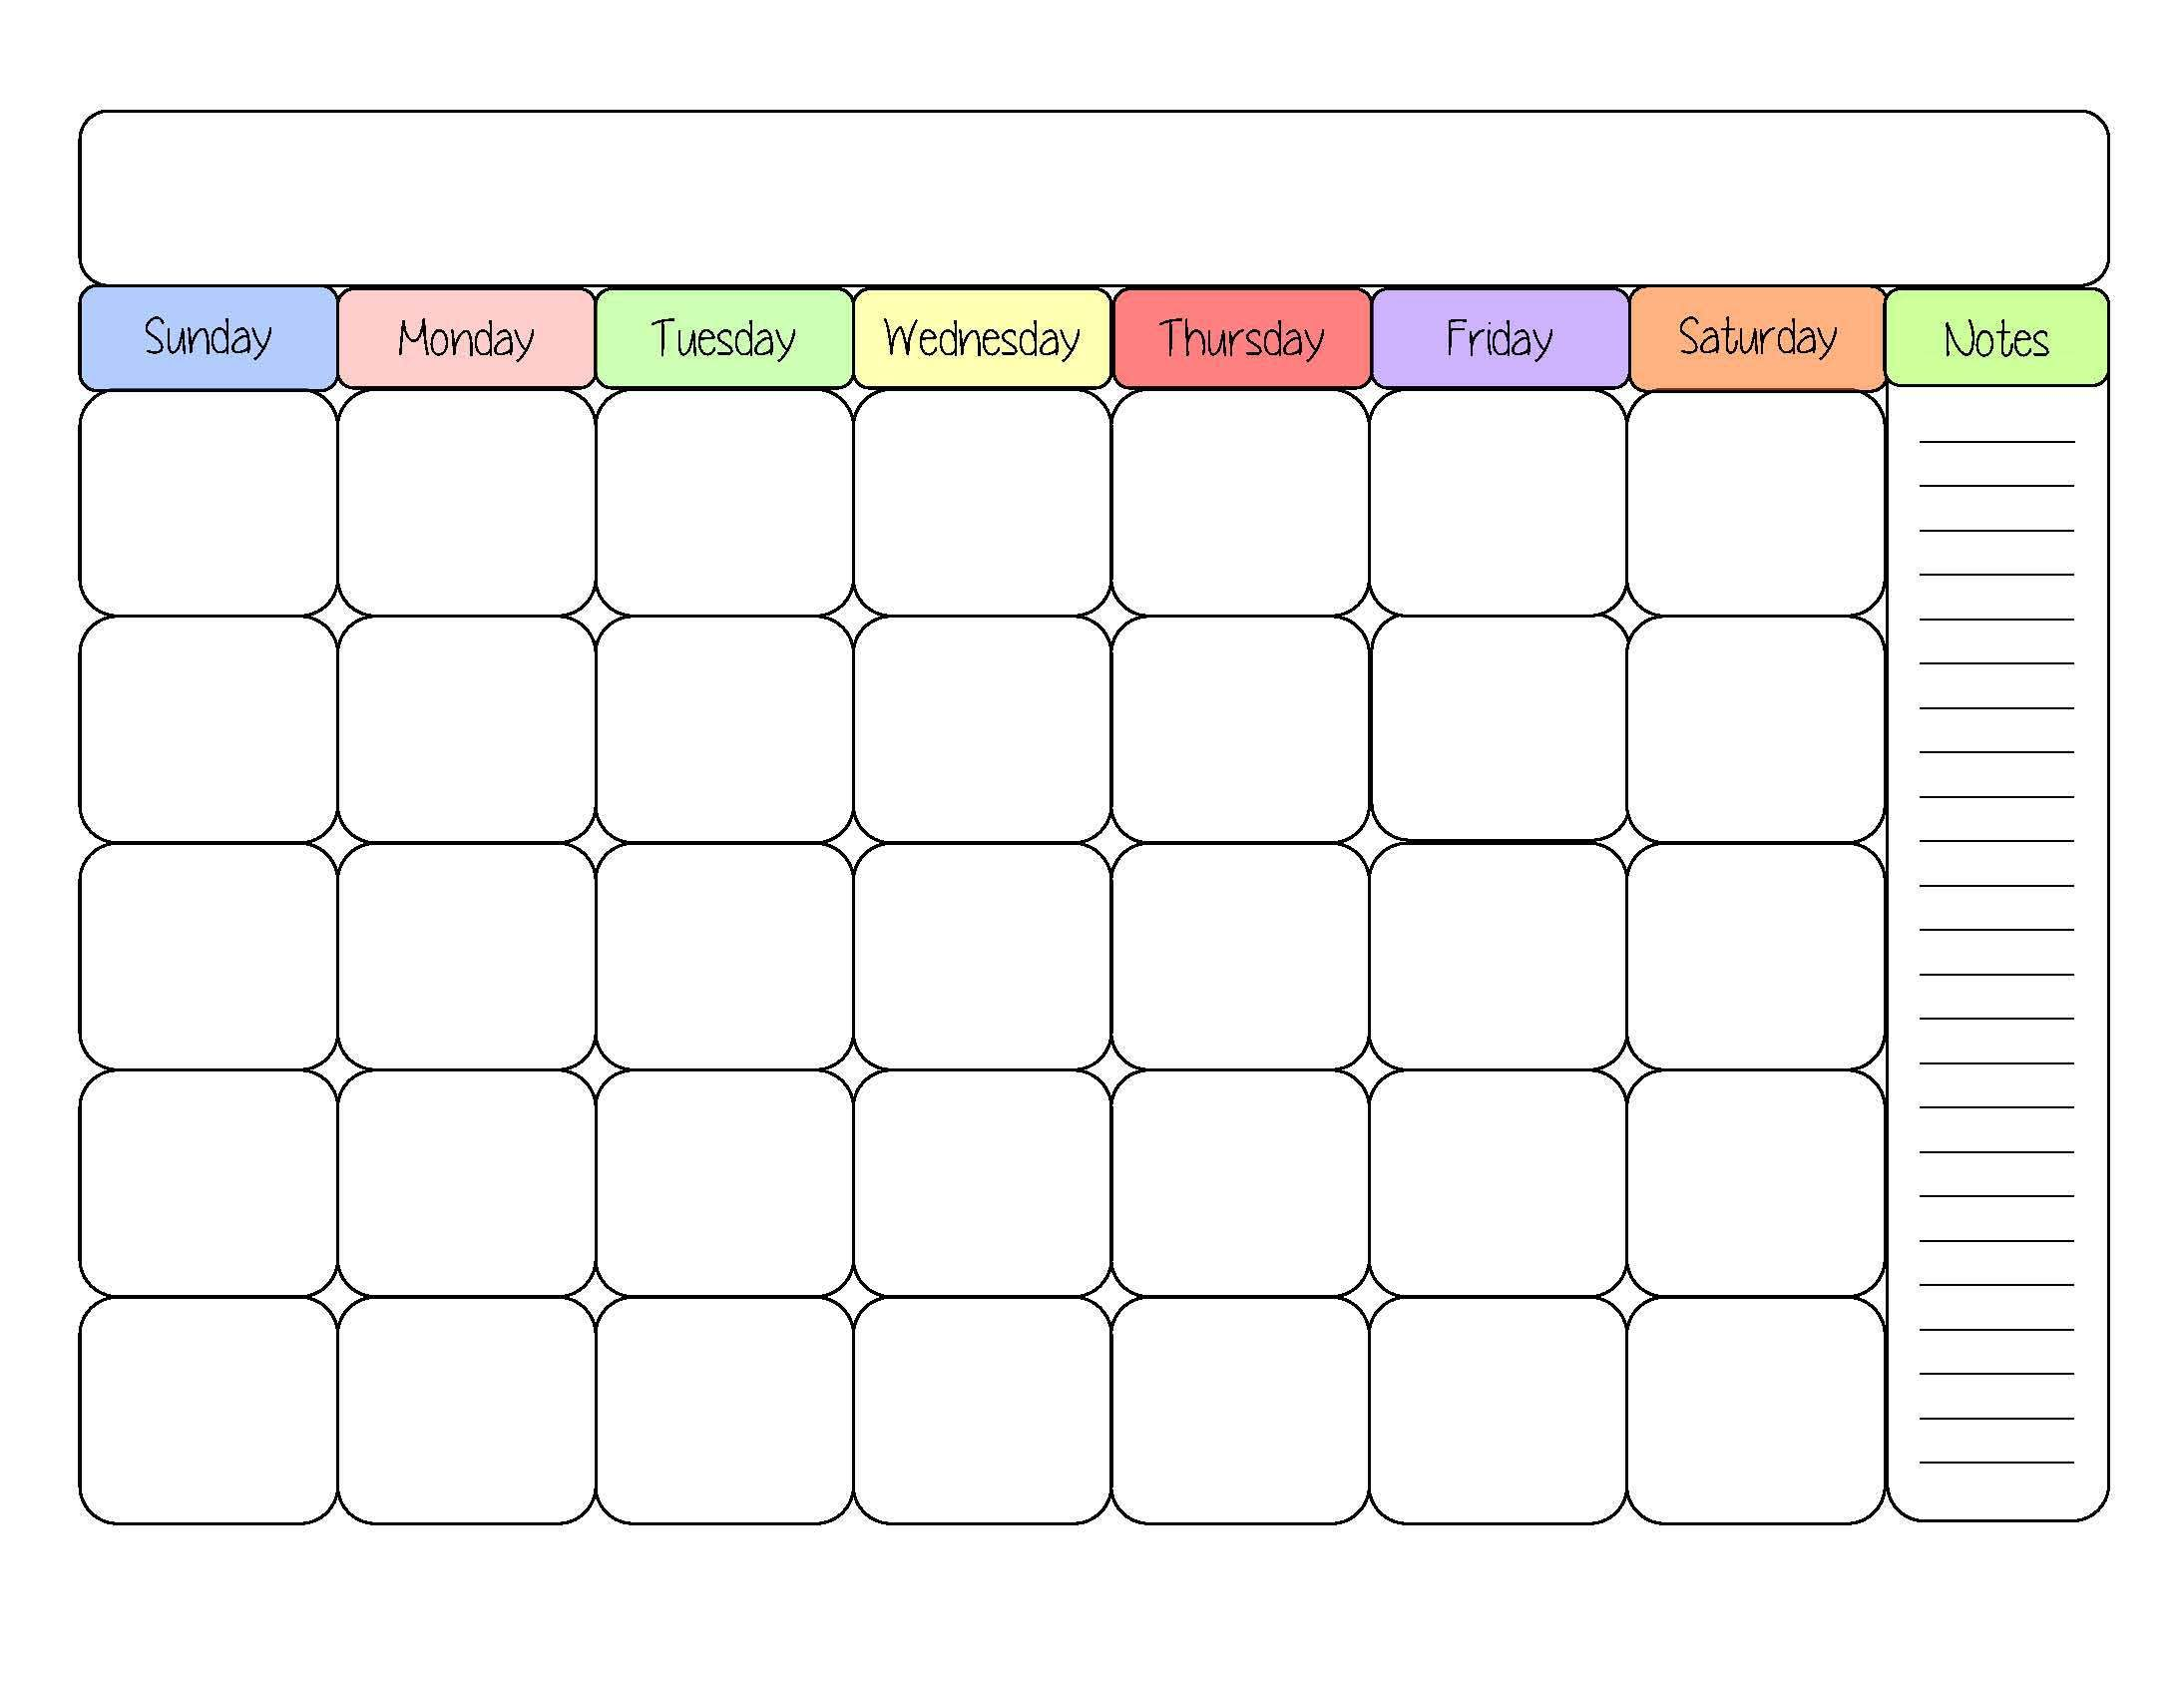 cute-blank-calendar-templates | Sight word | Pinterest | Blank ...